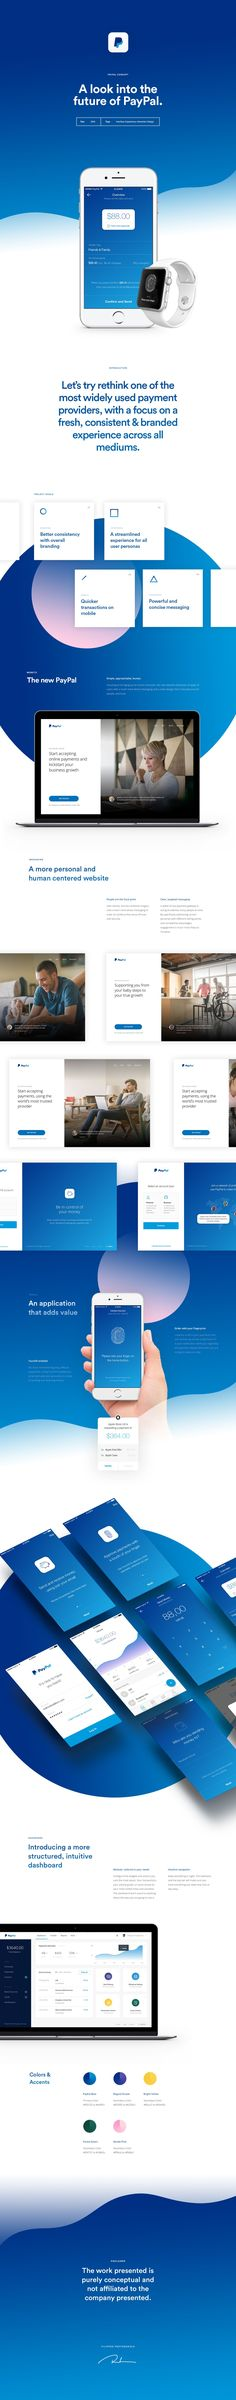 Paypal Redesign by Filippos Protogeridis #ui #ux #userexperience #website #webdesign #userinterface